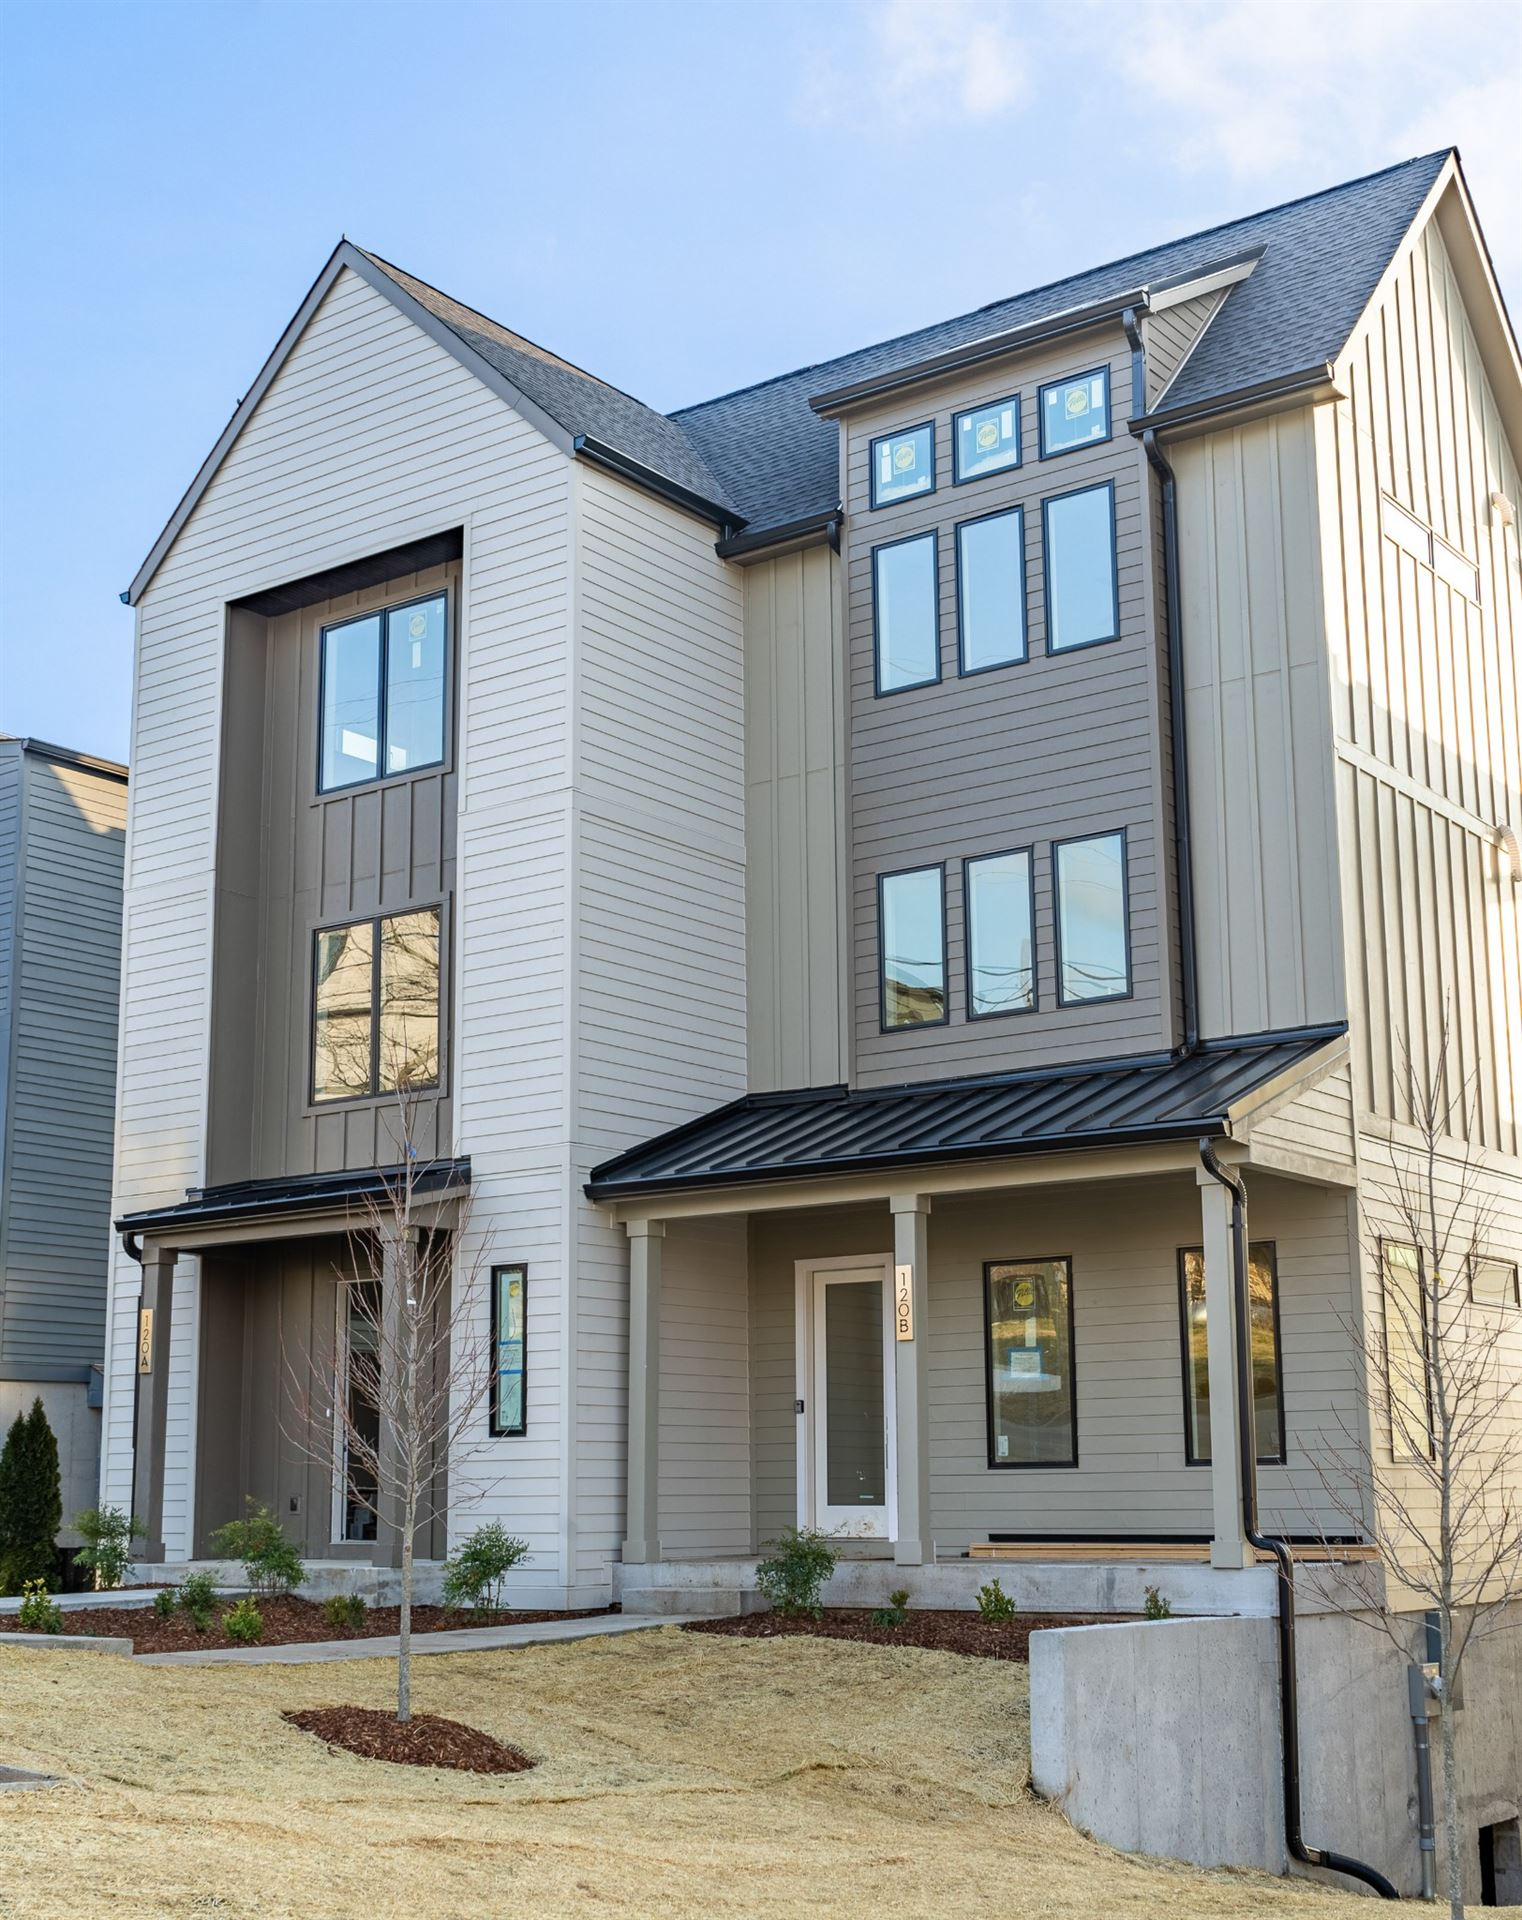 120 Fern Ave #A & B, Nashville, TN 37207 - MLS#: 2229147